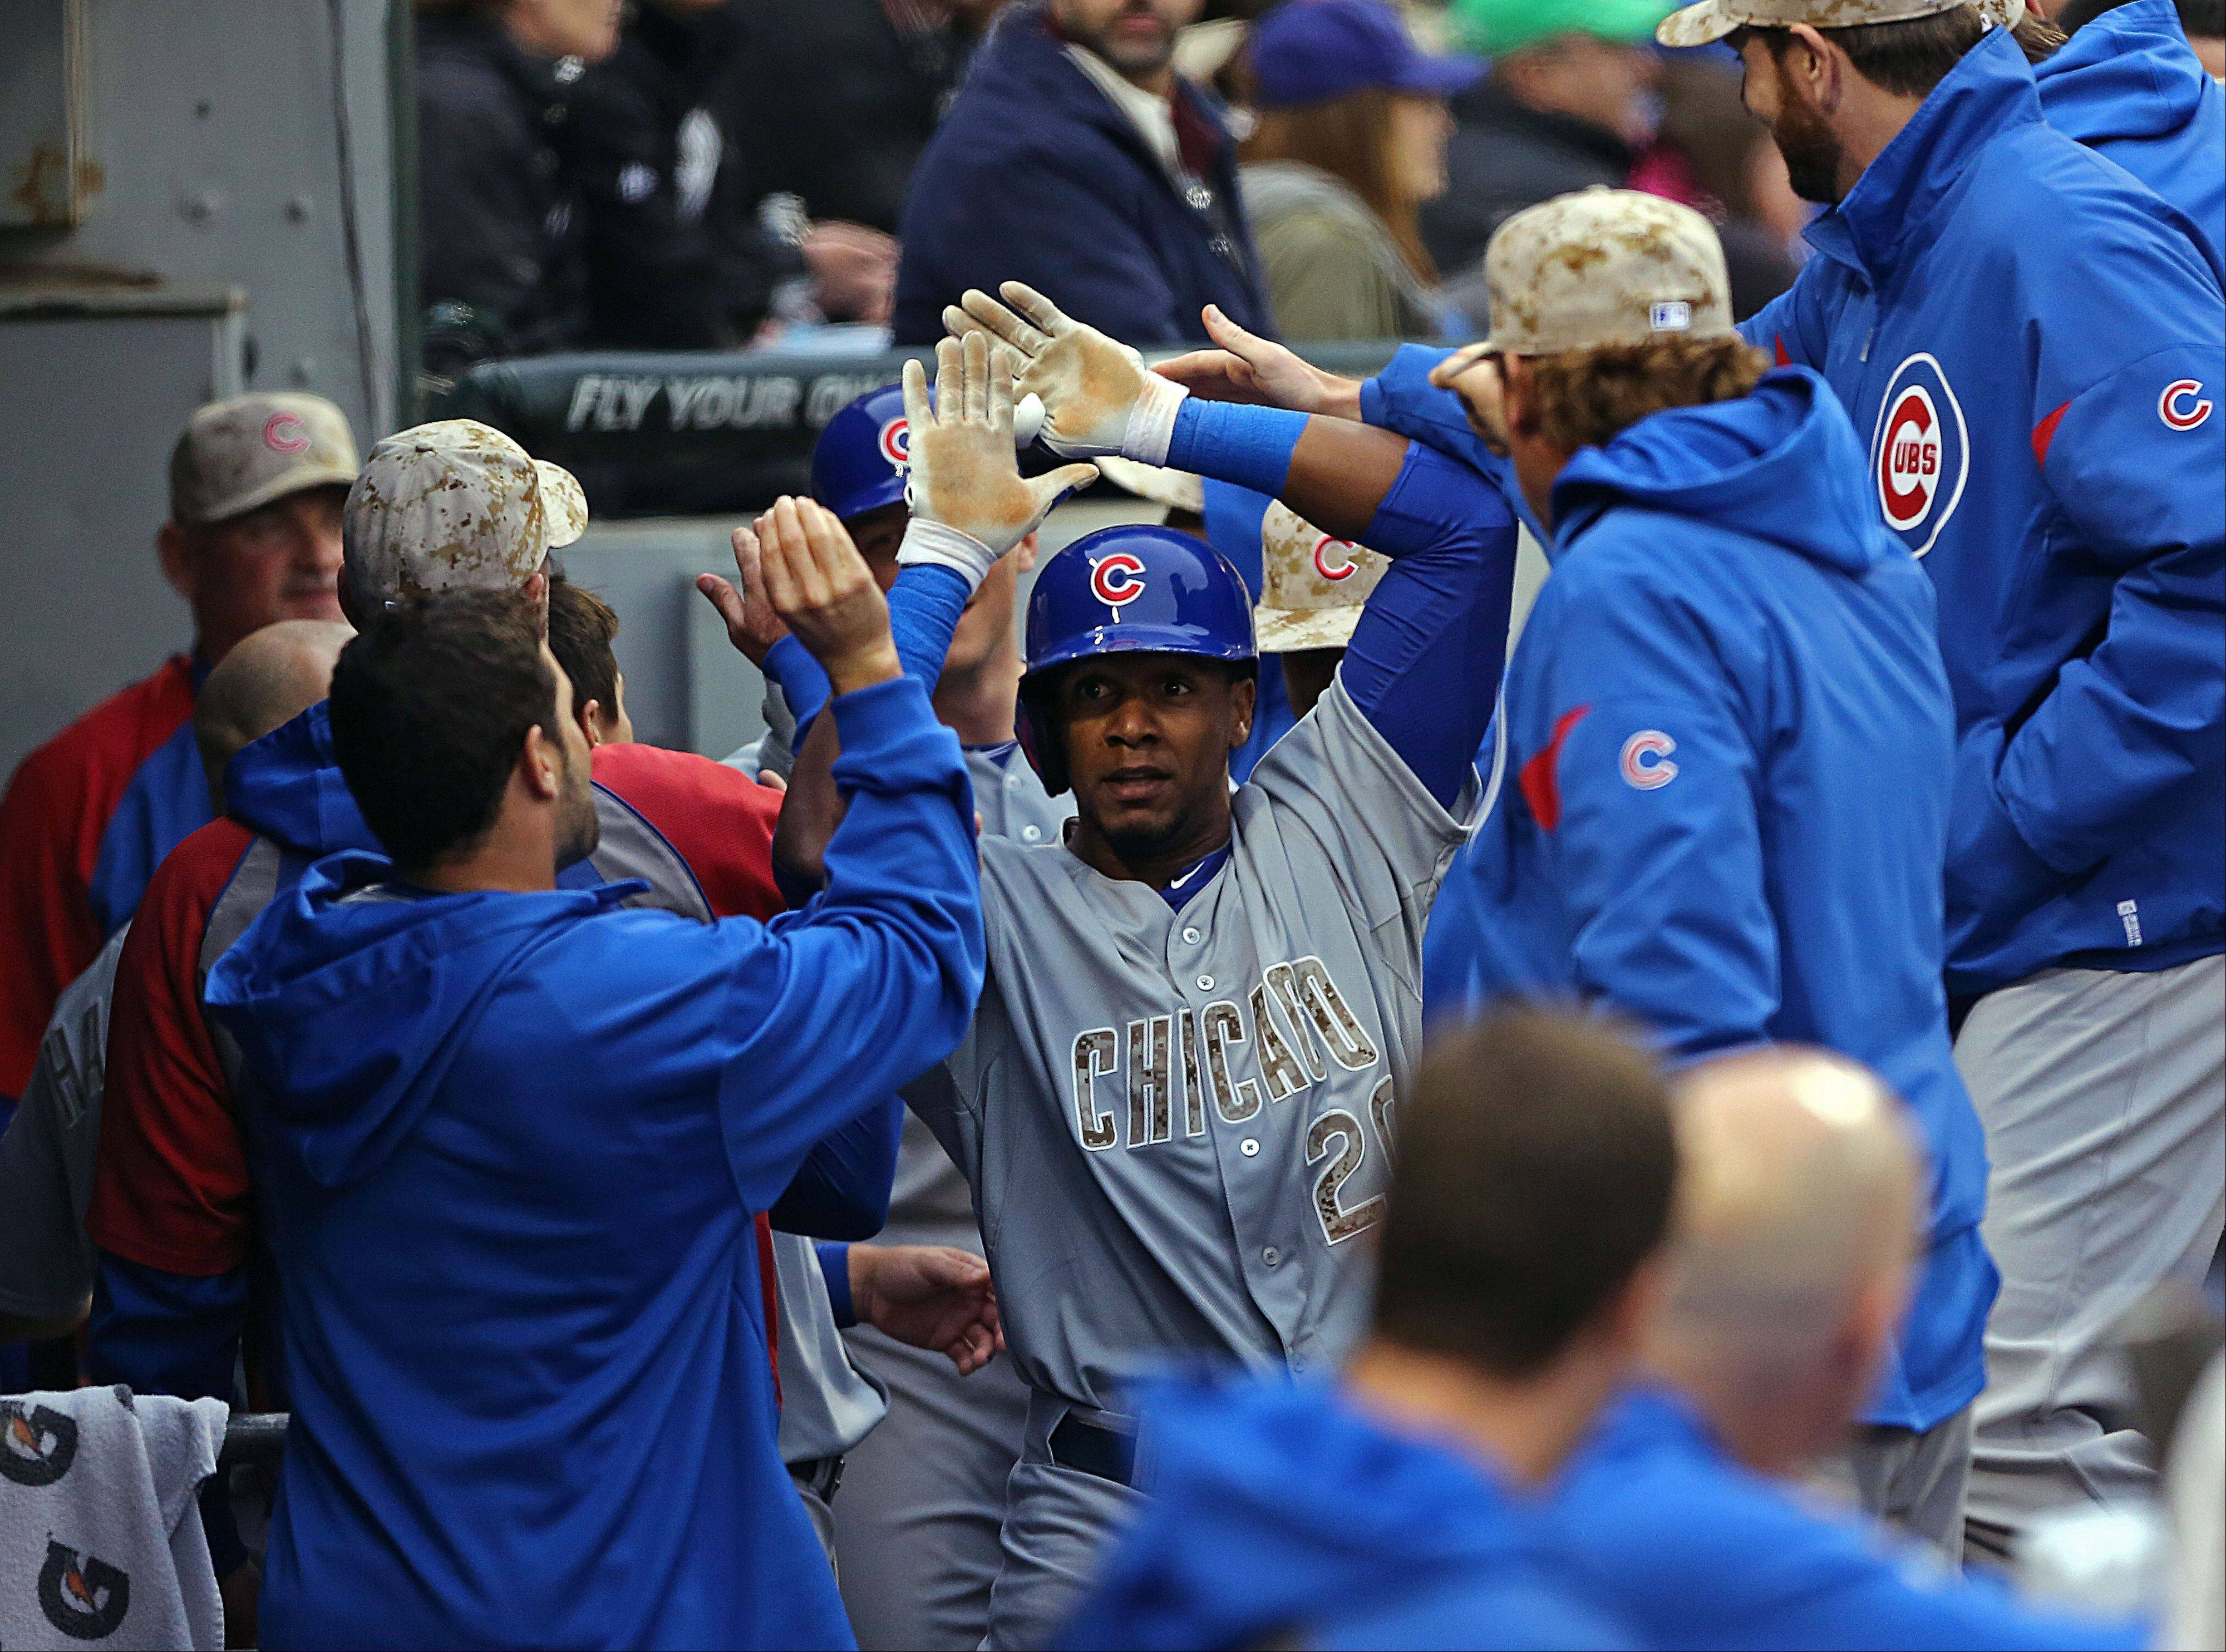 Cubs outfielder Julio Borbon gets high fives in the dugout after hitting a two-run homer in the fifth inning, giving the Cubs a 3-0 lead over the White Sox at U.S. Cellular Field.